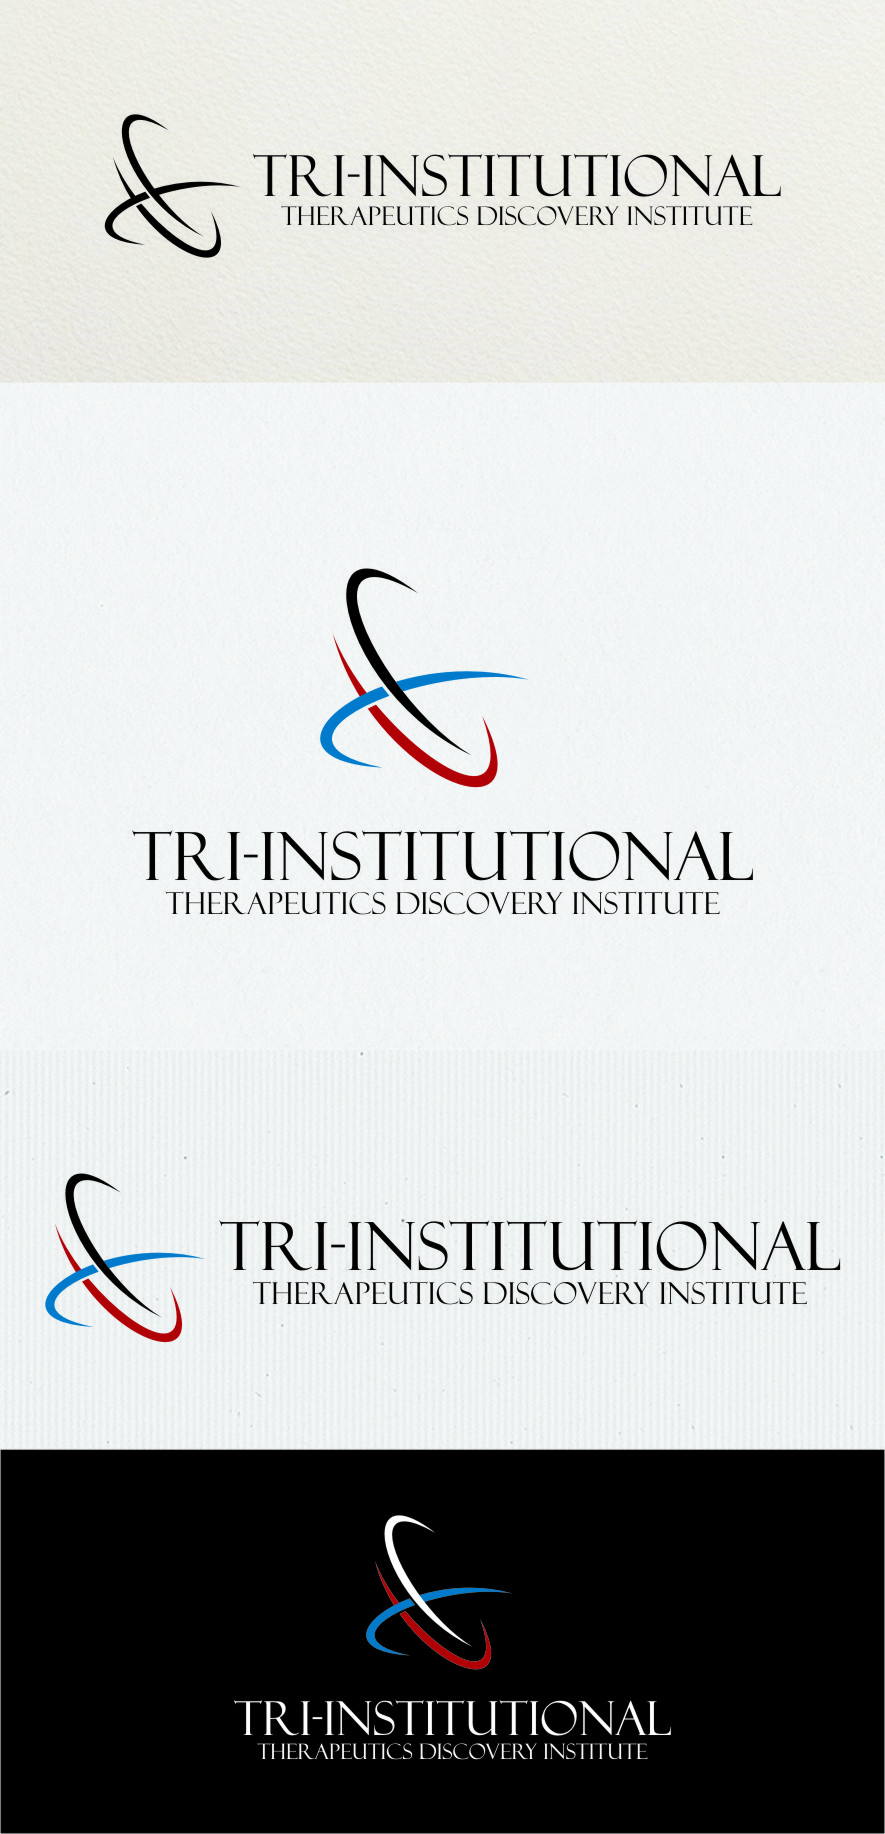 Logo Design by RasYa Muhammad Athaya - Entry No. 185 in the Logo Design Contest Inspiring Logo Design for Tri-Institutional Therapeutics Discovery Institute.